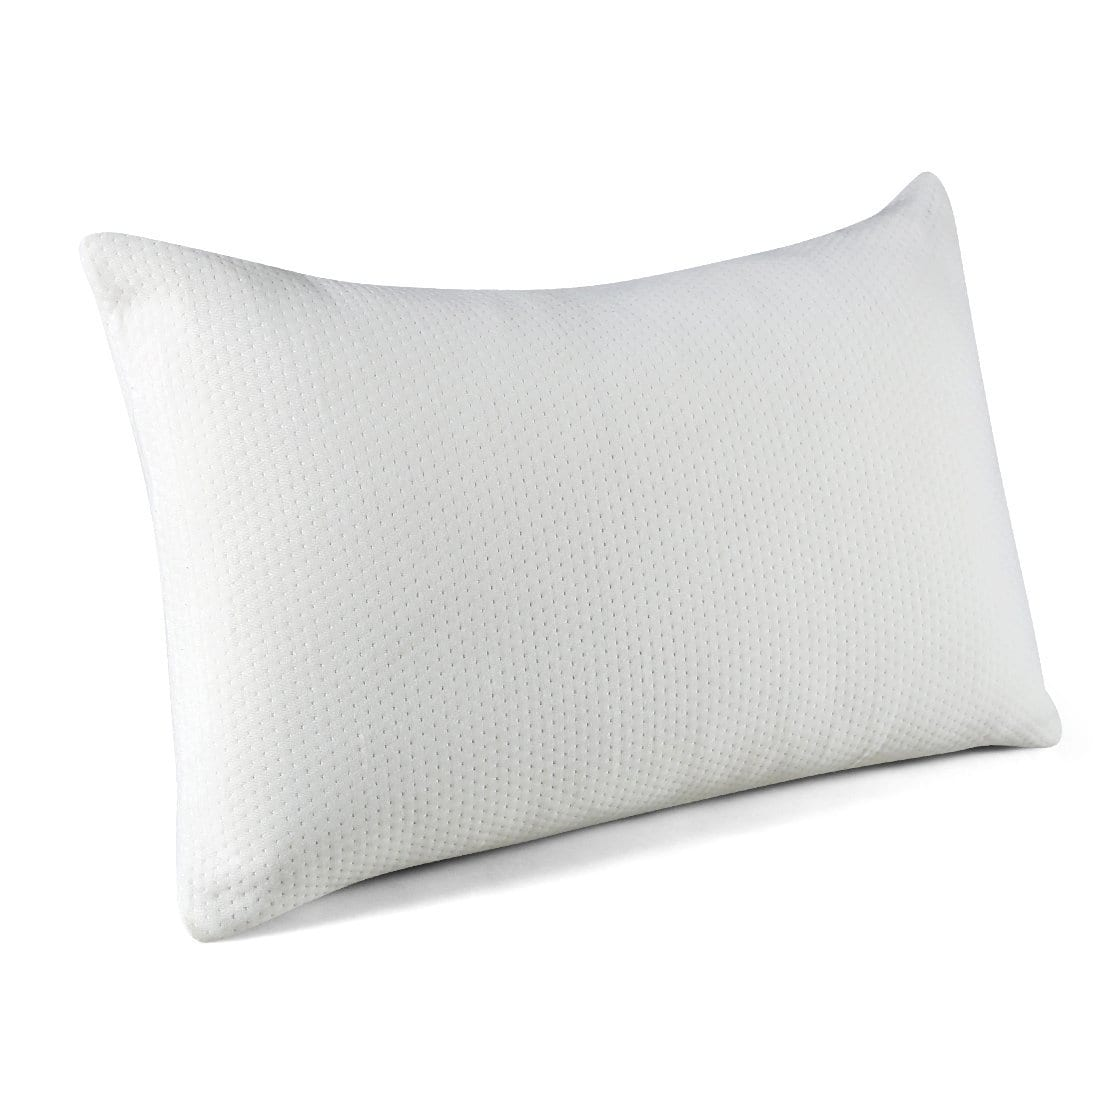 TASTELIFE - Hypoallergenic memory foam pillow with removable cover - $29.96 AC